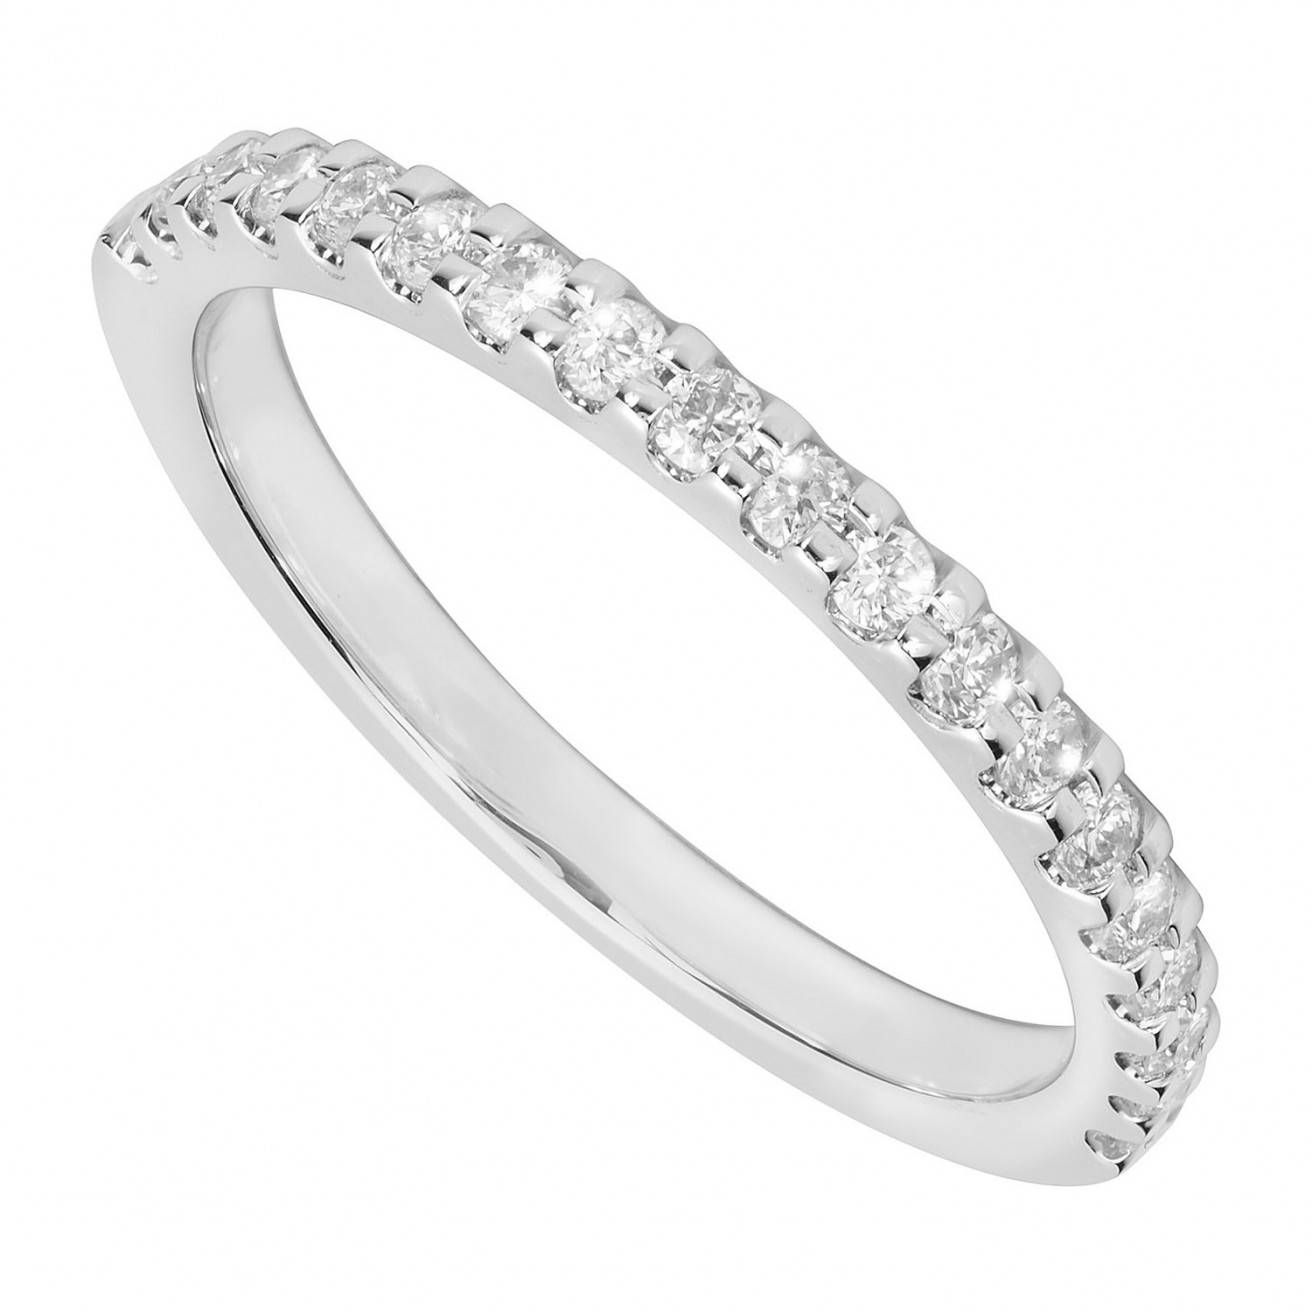 Buy Platinum Wedding Bands Online Fraser Hart Regarding Diamond And Rings View